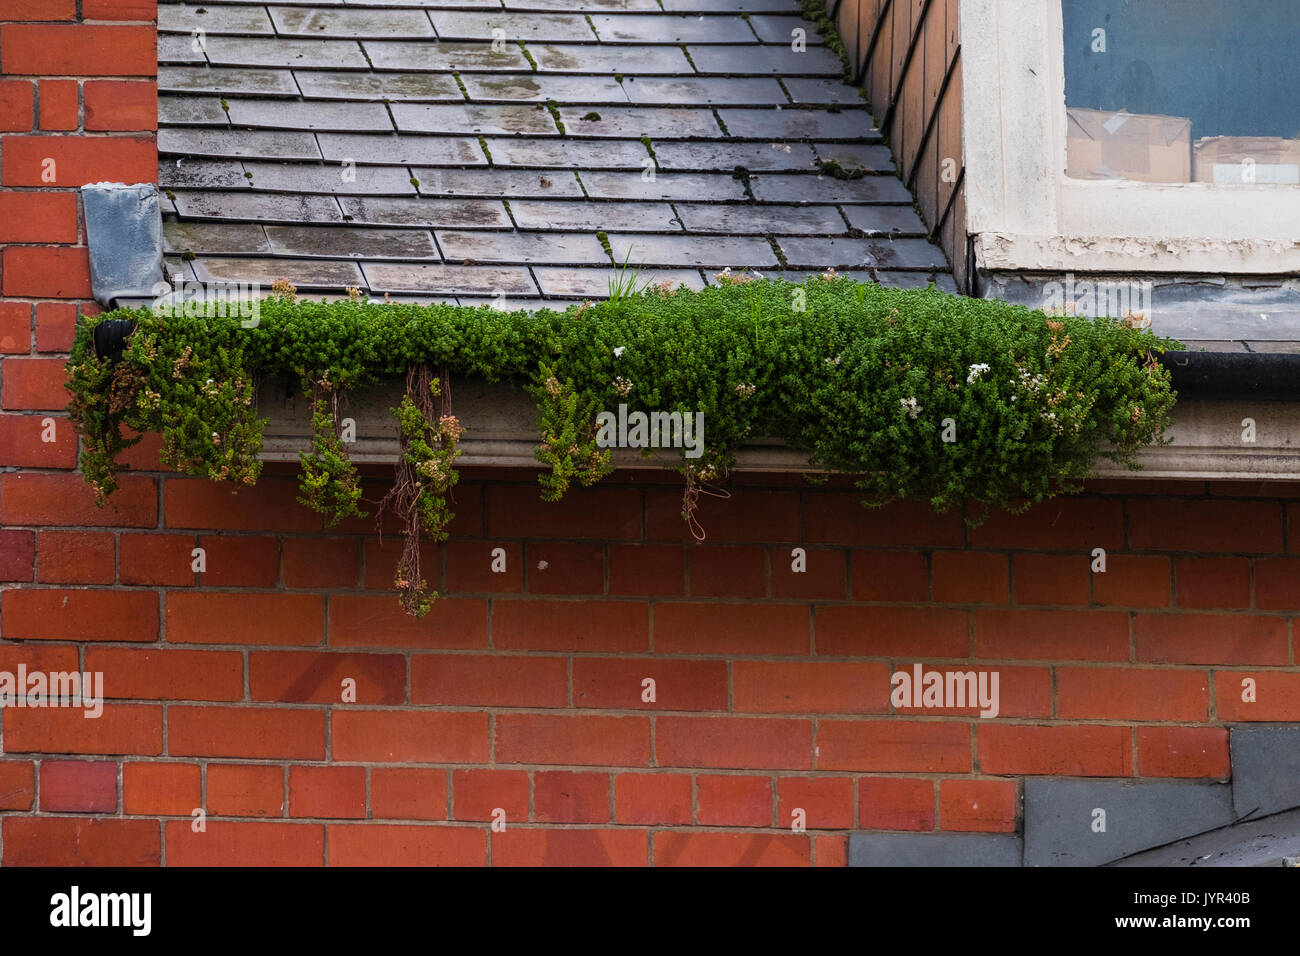 Reclaimed by nature: guttering on houses overgrown and blocked by thick growth of grass, weeds  and other plants - Stock Image